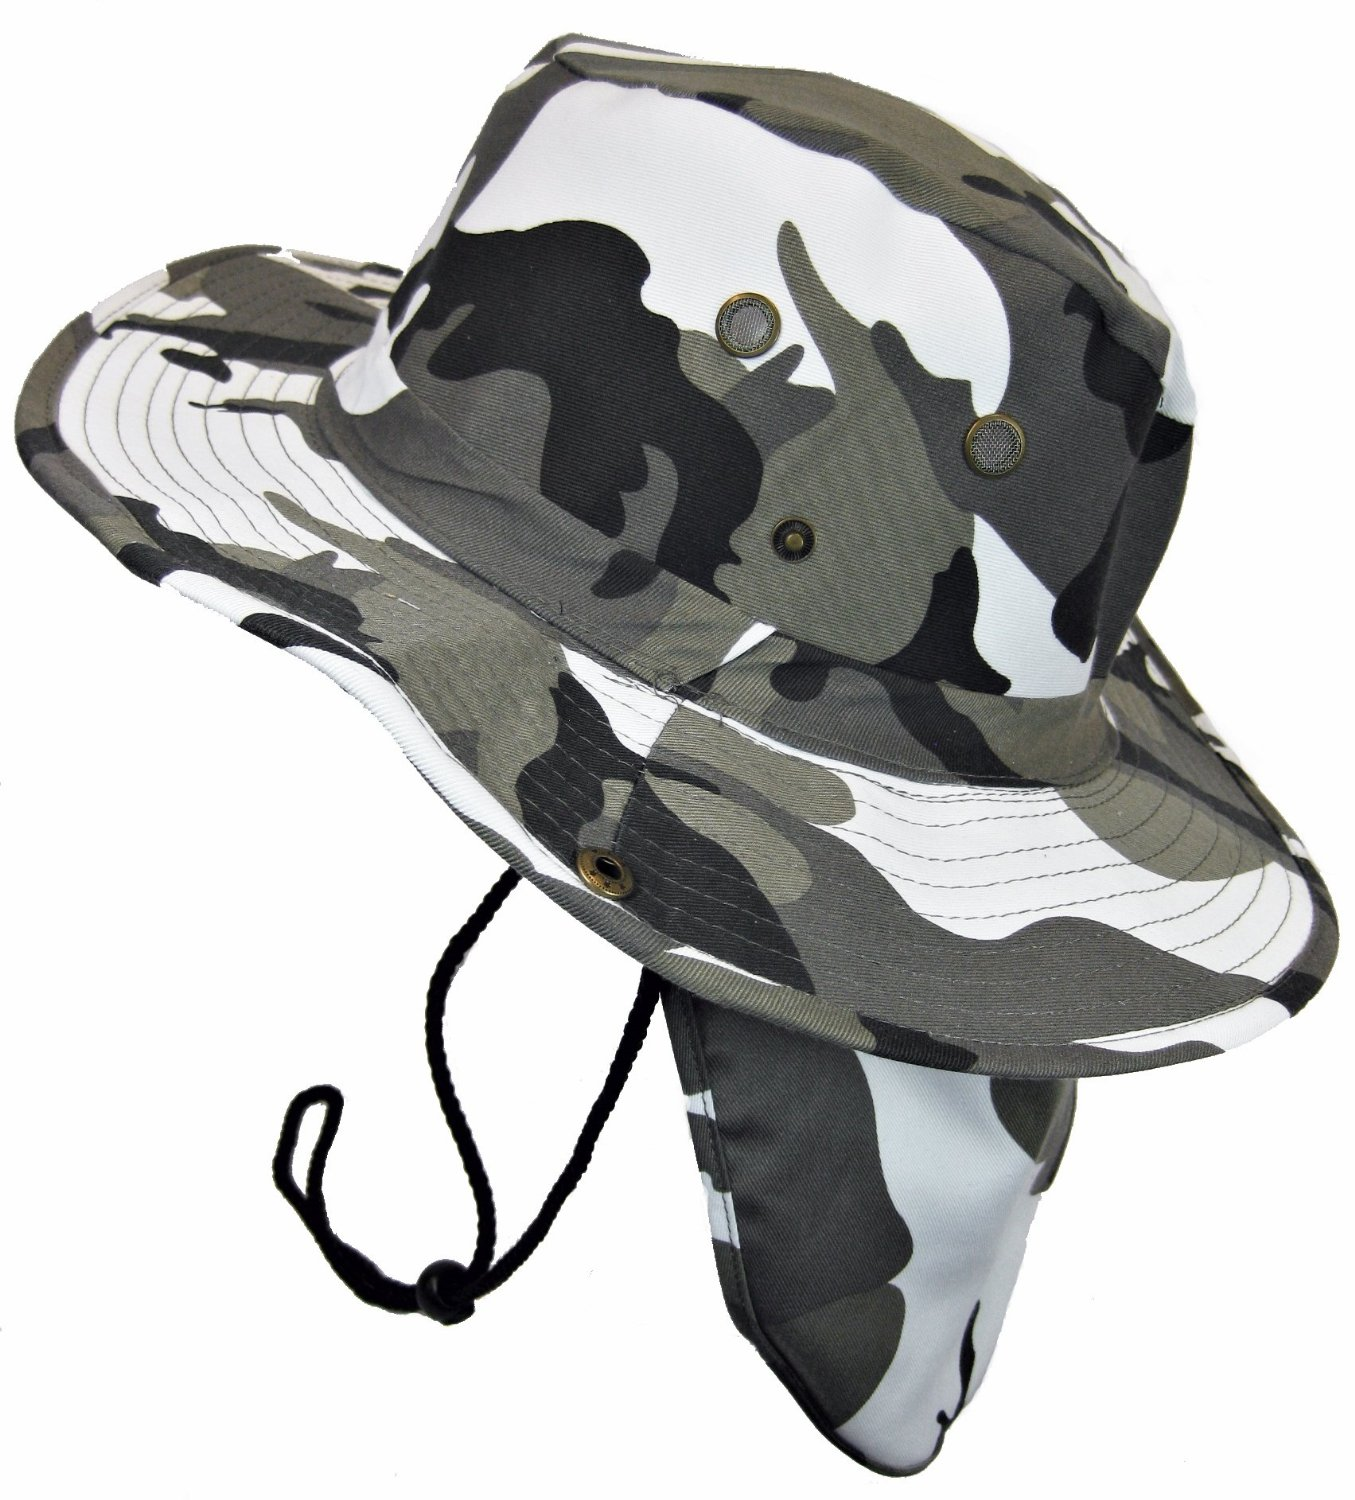 d13ccd26 Military Camouflage Boonie Bush Safari Outdoor Fishing Hiking Hunting  Boating Snap Brim Hat Sun Cap with